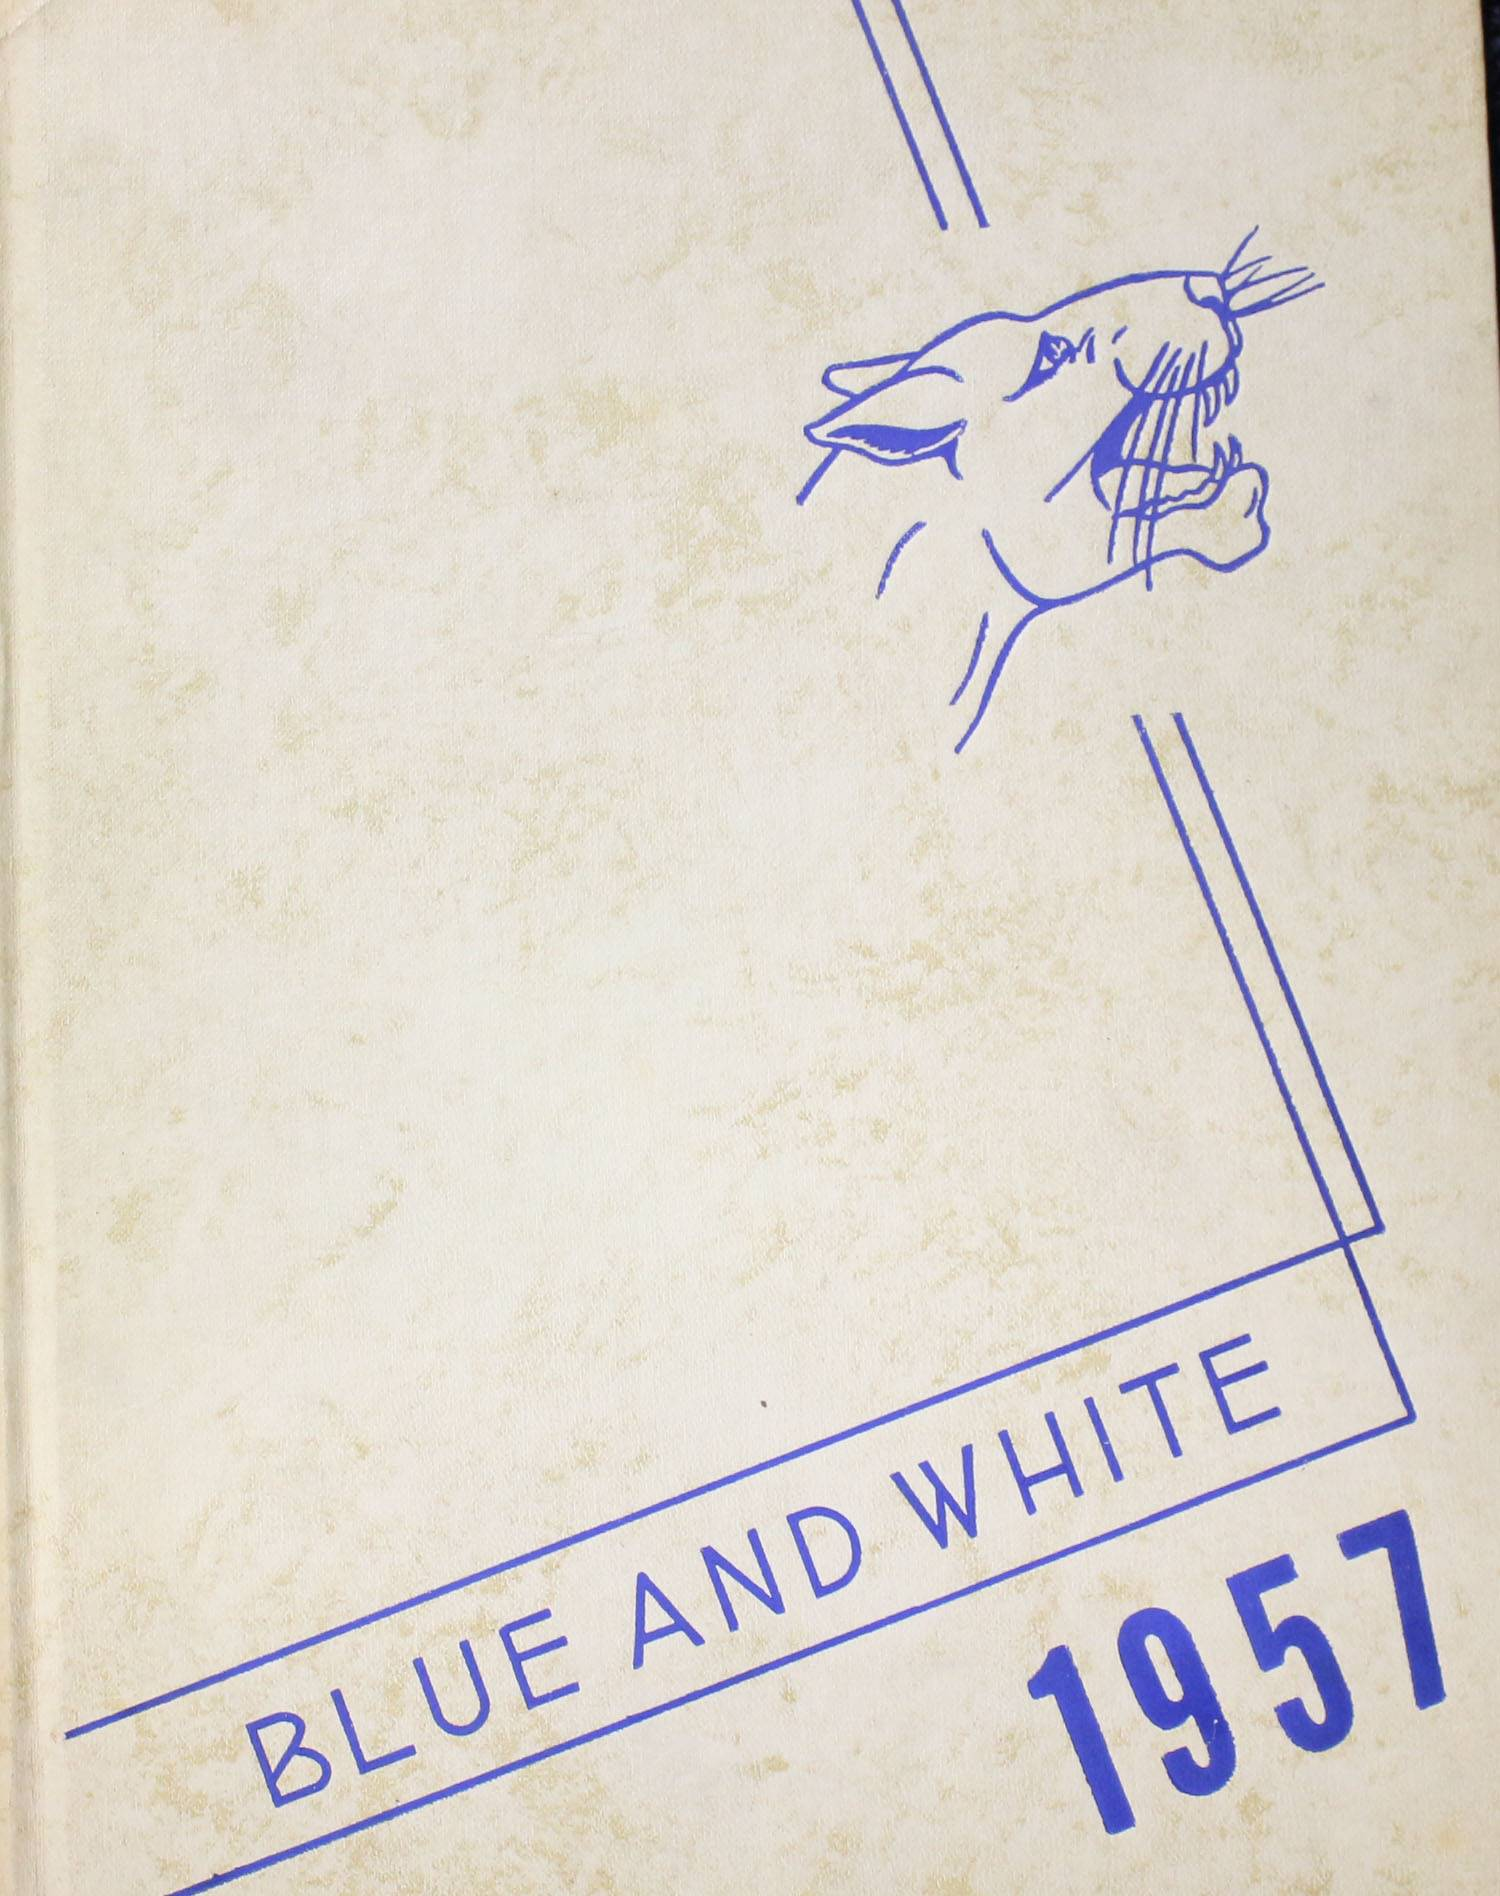 1957 Yearbook cover page